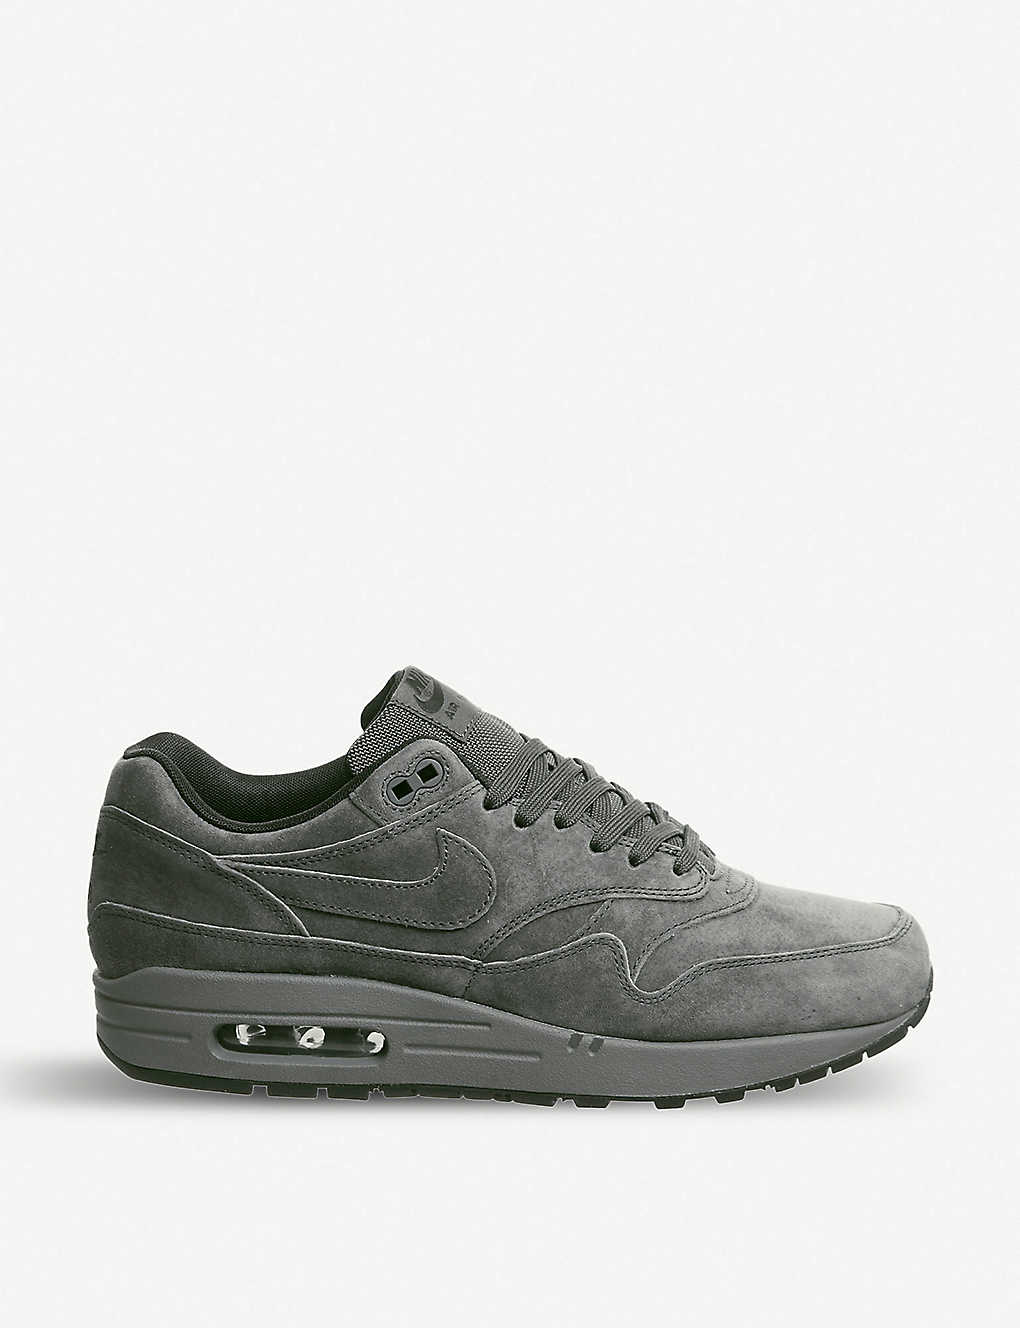 a26a94f514a3 NIKE - Air Max 1 leather trainers